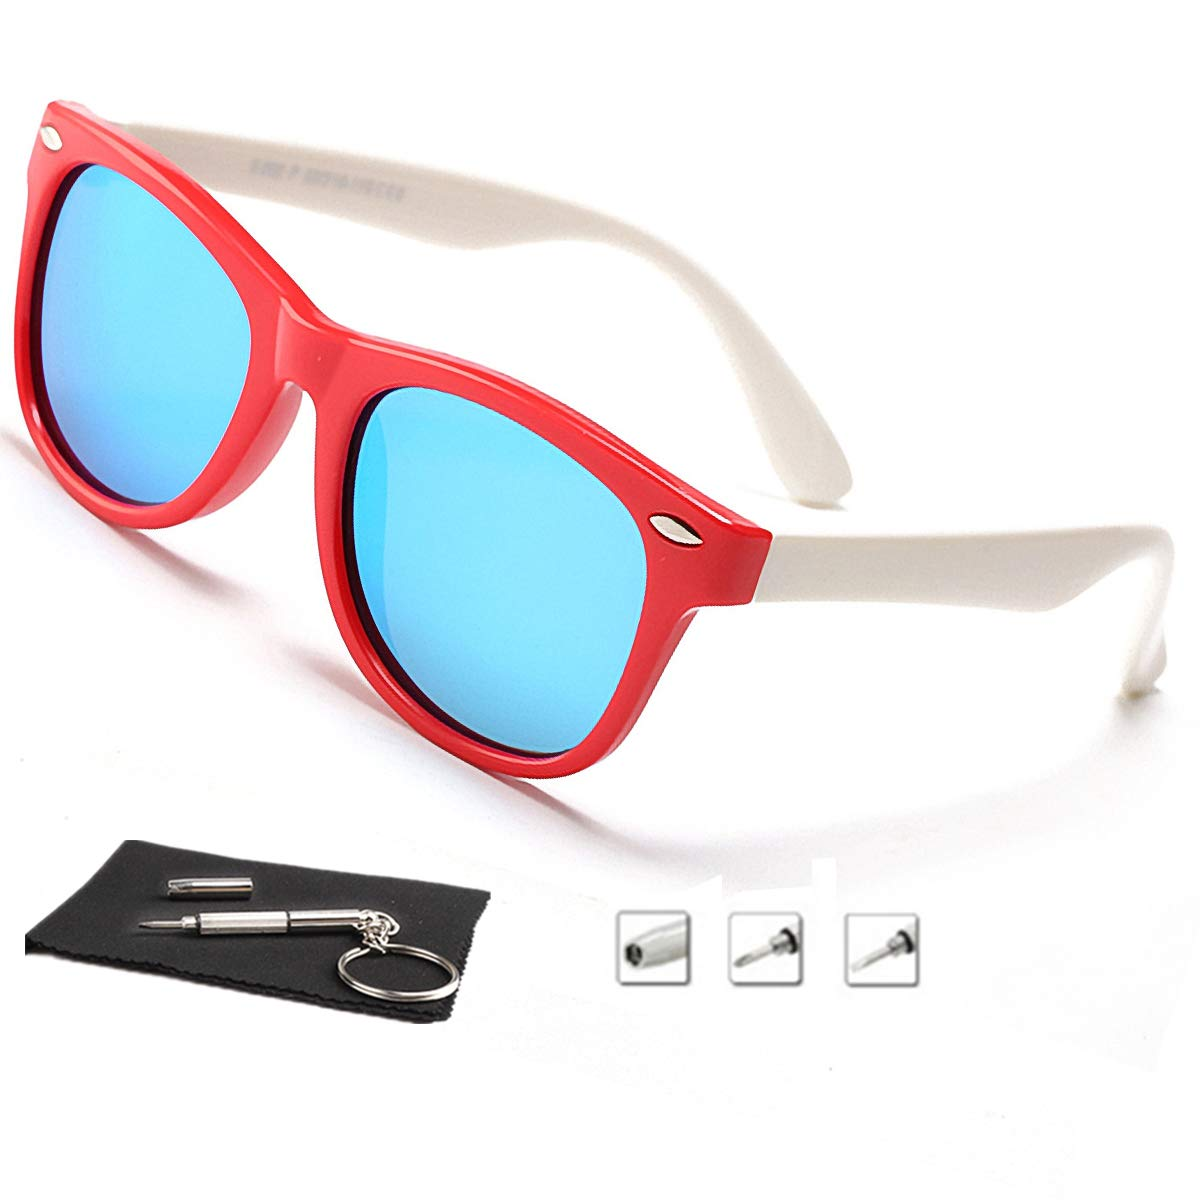 Kids Sunglasses For Kids Polarized Sunglasses Girls Child Boys Age 3-10 (Rubberized Red &White| Polarized Ice Blue)